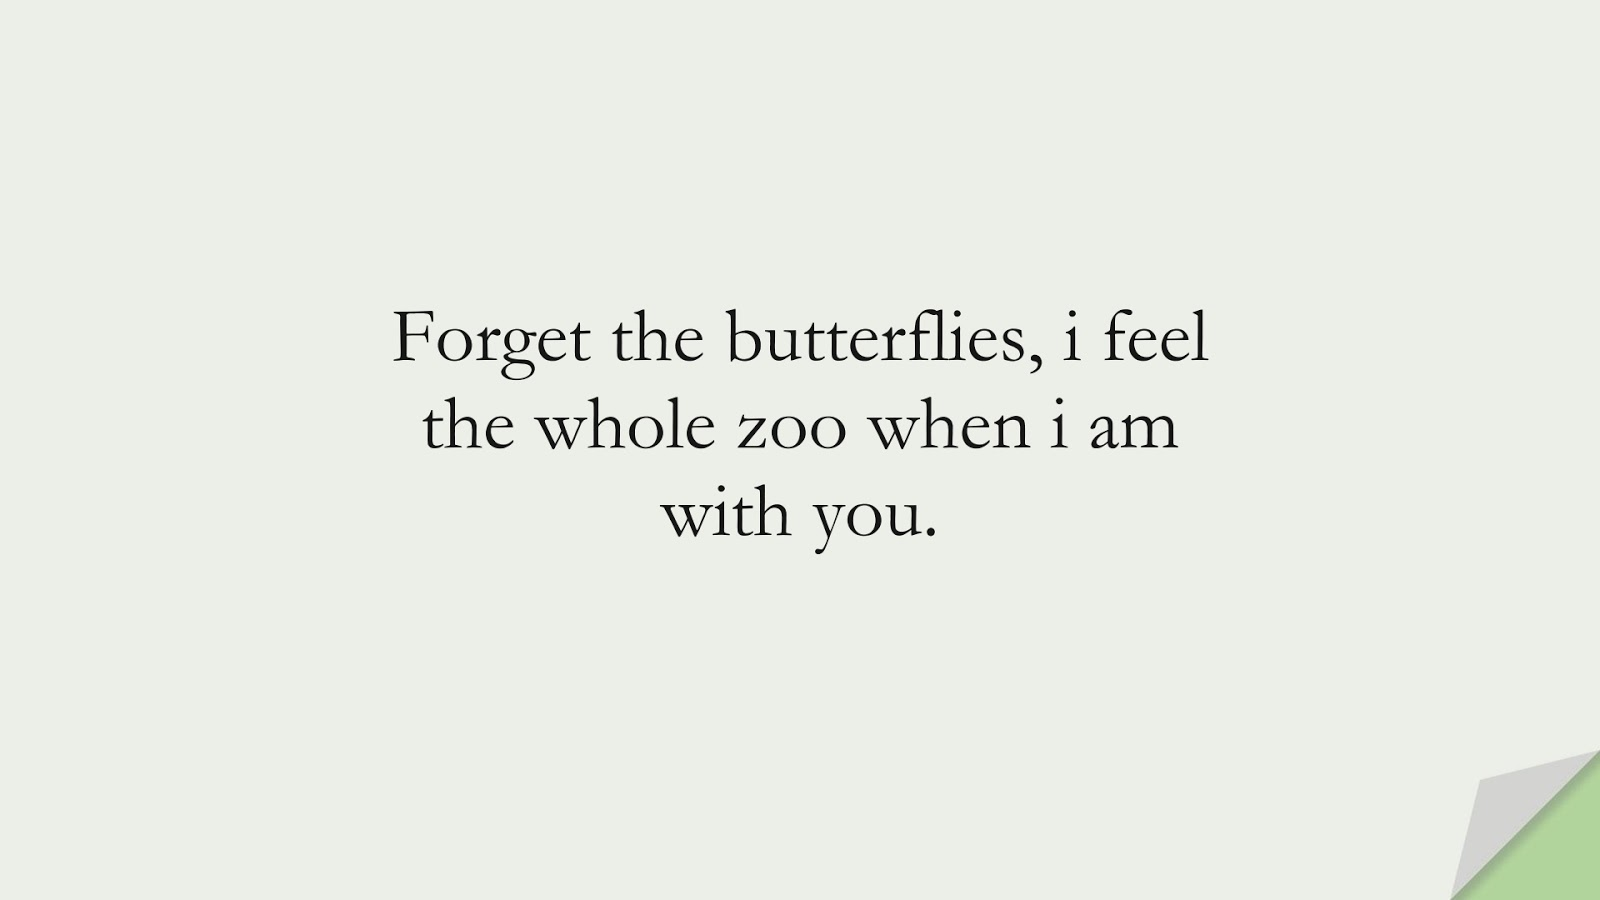 Forget the butterflies, i feel the whole zoo when i am with you.FALSE